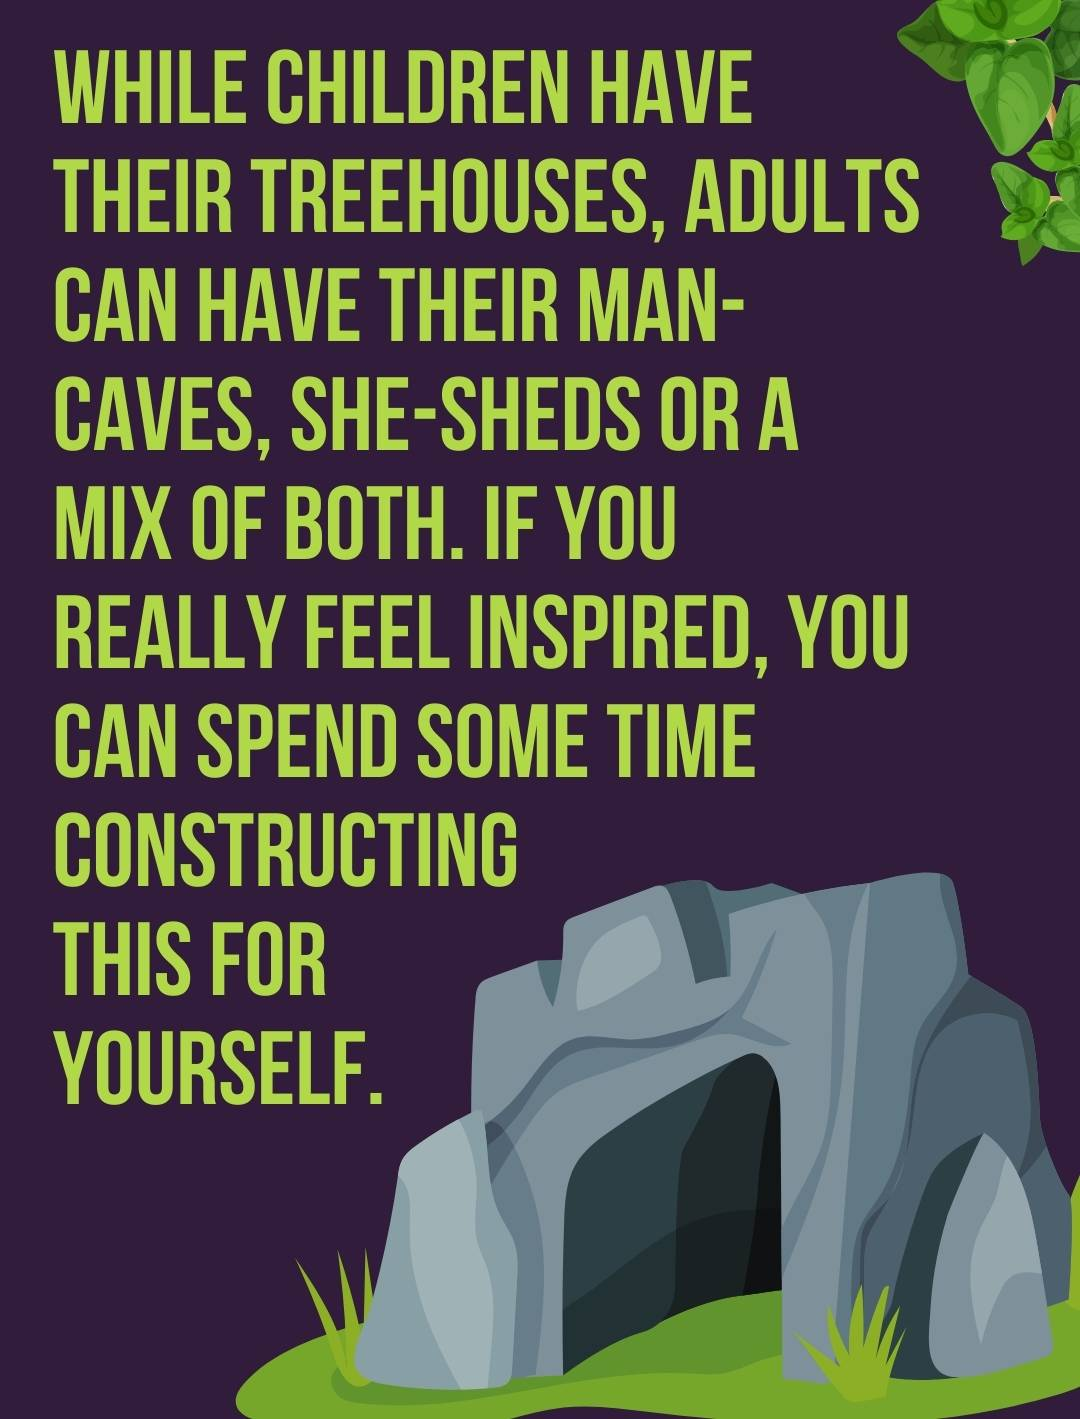 While children have their treehouses, adults can have their man-caves, she-sheds or a mix of both. If you really feel inspired, you can spend some time constructing this for yourself.